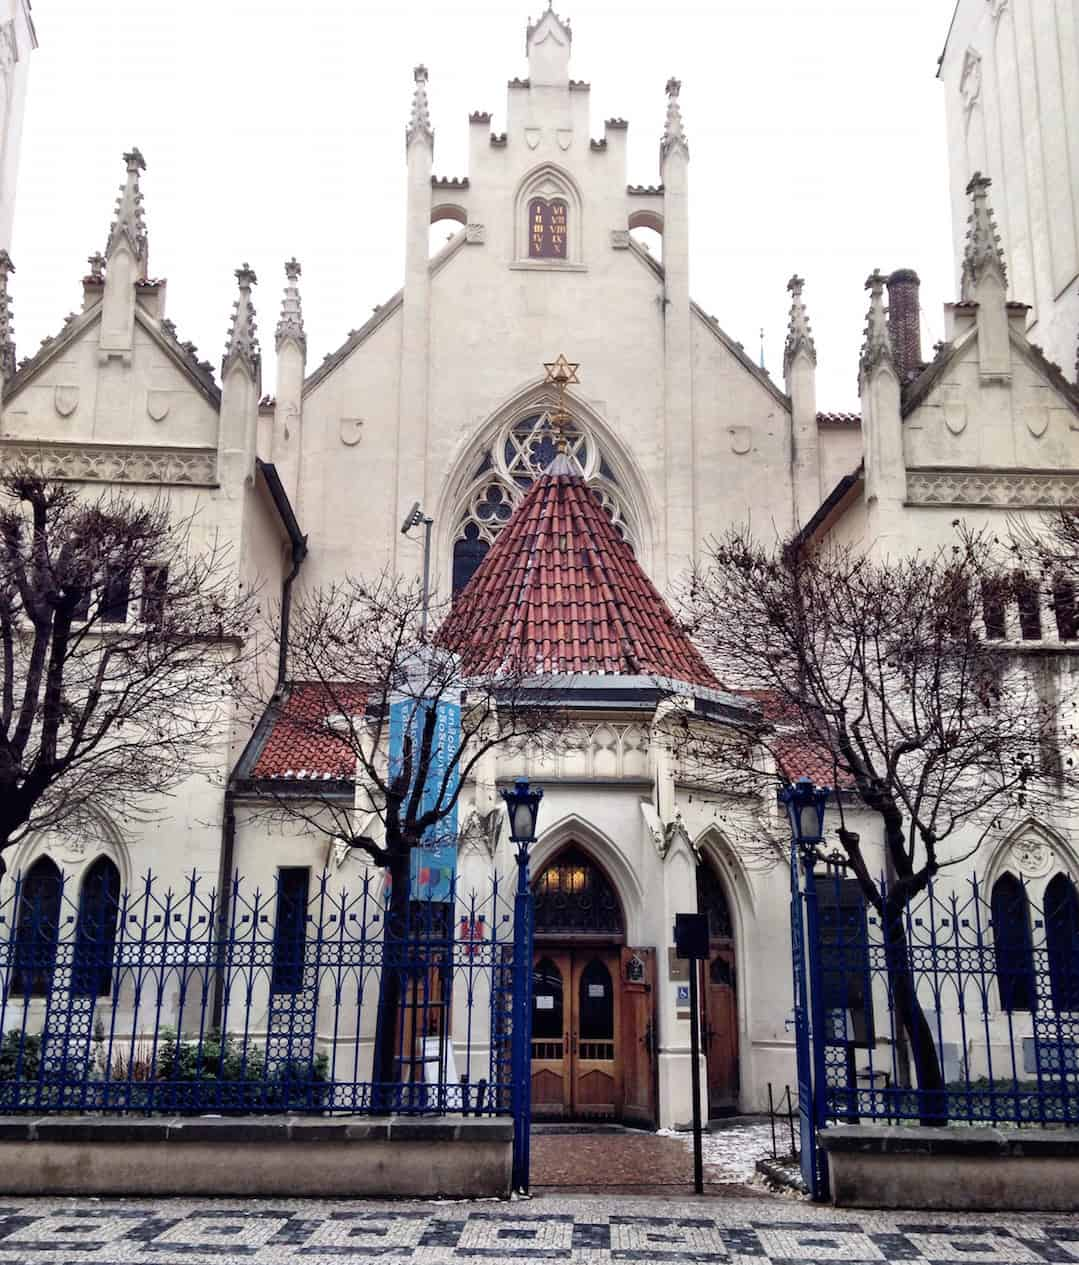 Prague First Timers Guide: Old Synagogue - Things to do in Prague, what not to miss for first timers traveling to Prague, #travel #travelblogger #Prague #Europe #CzechRepublic #Czechia